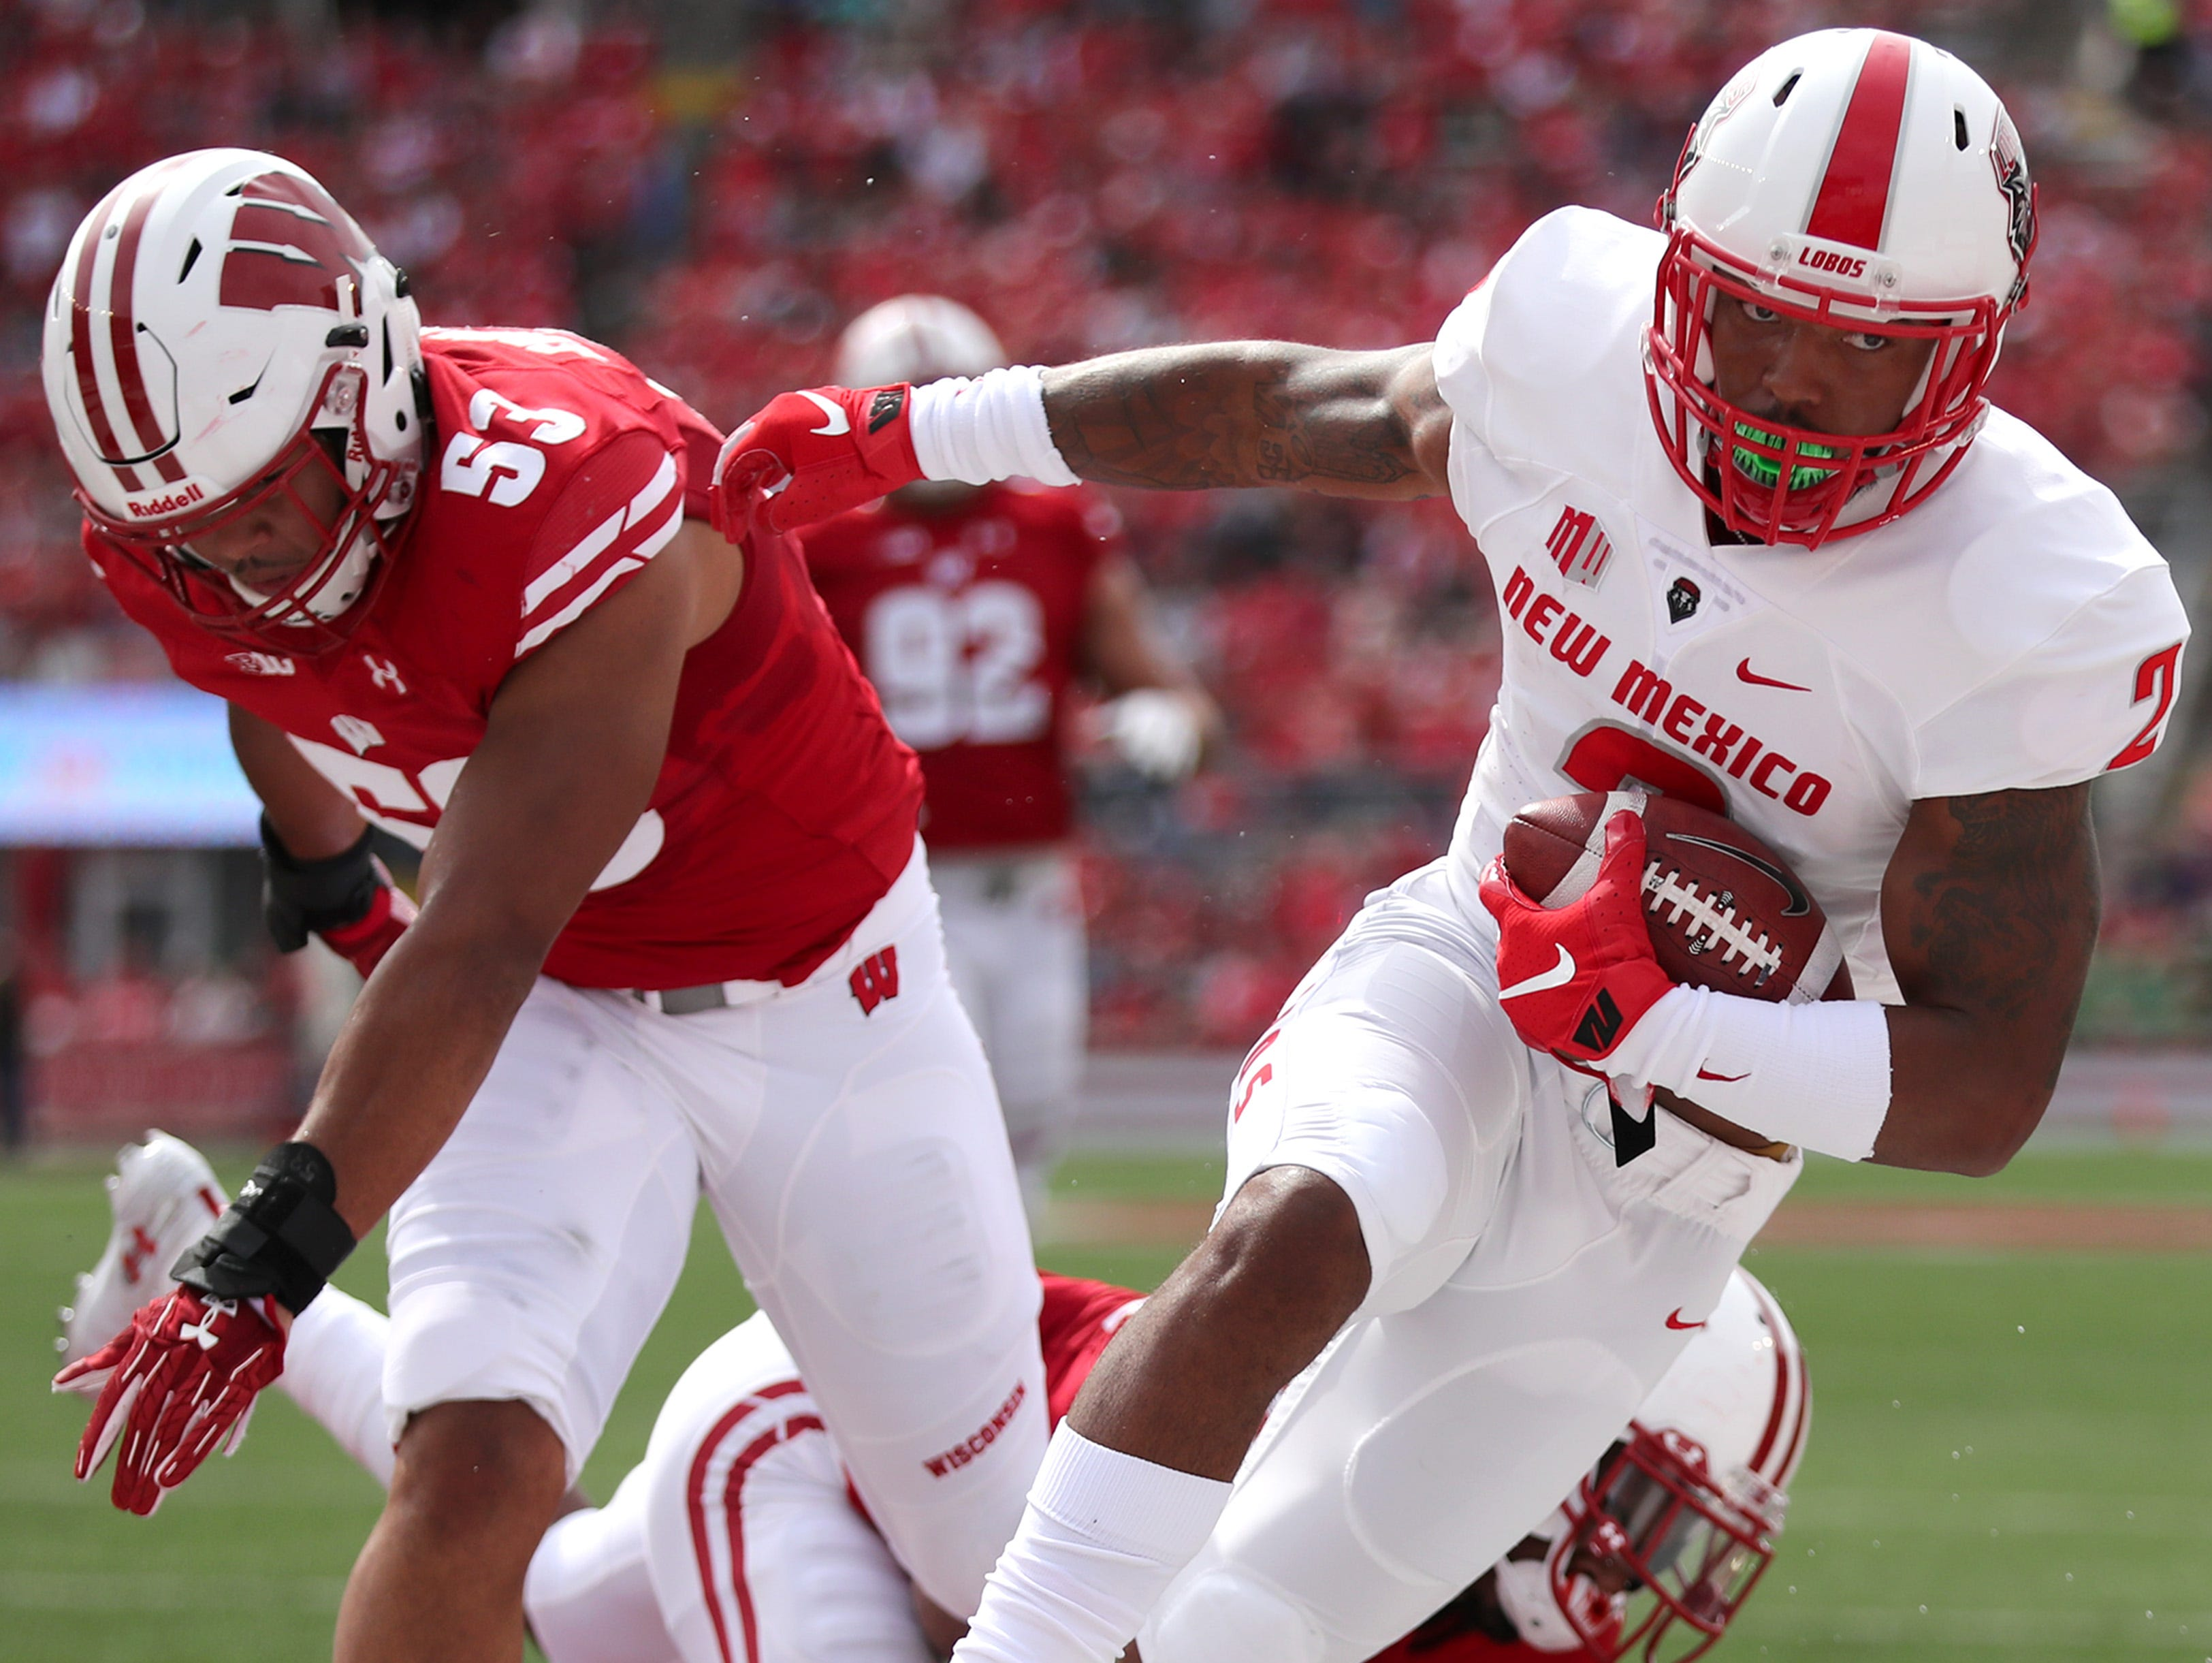 New Mexico wide receiver Delane Hart-Johnson (2) breaks through tackles from Wisconsin linebacker T.J. Edwards (53) and Wisconsin cornerback Faion Hicks (20) for a touchdown Saturday, Sept. 8, 2018, at Camp Randall Stadium in Madison, Wis.